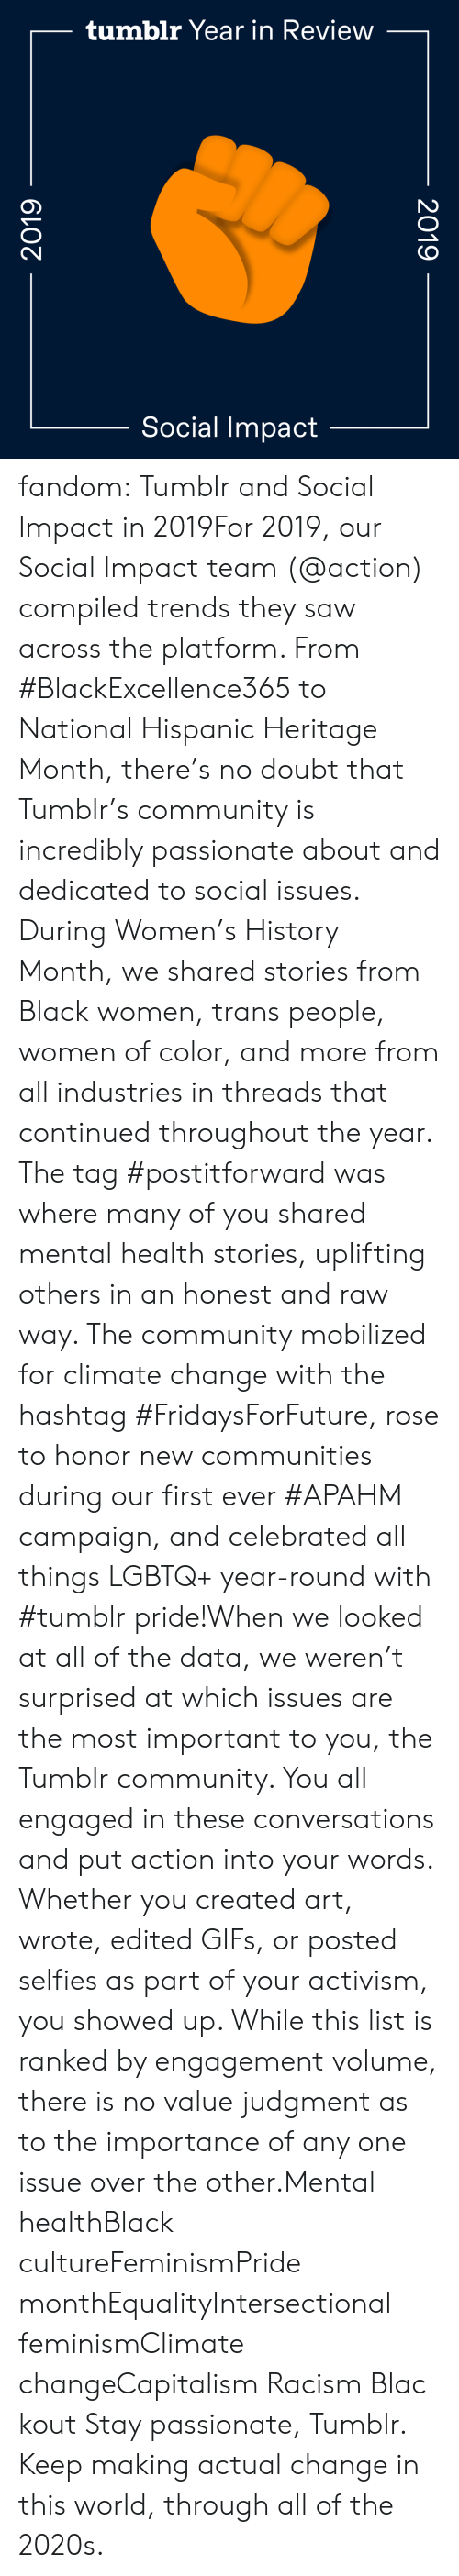 honor: tumblr Year in Review  Social Impact  2019  2019 fandom:  Tumblr and Social Impact in 2019For 2019, our Social Impact team (@action​) compiled trends they saw across the platform. From #BlackExcellence365 to National Hispanic Heritage Month, there's no doubt that Tumblr's community is incredibly passionate about and dedicated to social issues. During Women's History Month, we shared stories from Black women, trans people, women of color, and more from all industries in threads that continued throughout the year. The tag #postitforward was where many of you shared mental health stories, uplifting others in an honest and raw way. The community mobilized for climate change with the hashtag #FridaysForFuture, rose to honor new communities during our first ever #APAHM campaign, and celebrated all things LGBTQ+ year-round with #tumblr pride!When we looked at all of the data, we weren't surprised at which issues are the most important to you, the Tumblr community. You all engaged in these conversations and put action into your words. Whether you created art, wrote, edited GIFs, or posted selfies as part of your activism, you showed up. While this list is ranked by engagement volume, there is no value judgment as to the importance of any one issue over the other.Mental healthBlack cultureFeminismPride monthEqualityIntersectional feminismClimate changeCapitalism Racism Blackout Stay passionate, Tumblr. Keep making actual change in this world, through all of the 2020s.